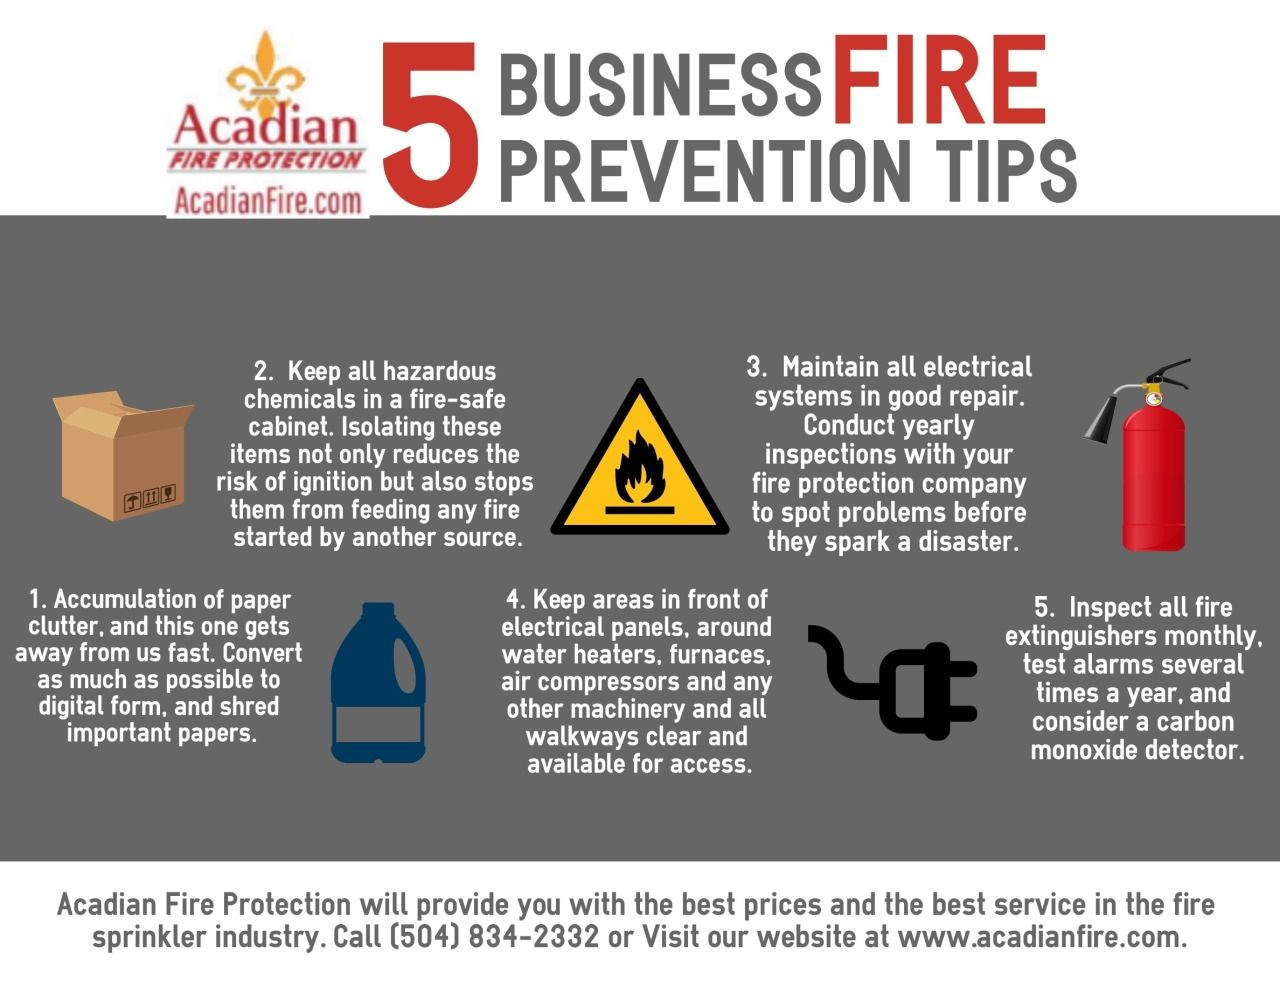 Acadian Fire Protection Inc